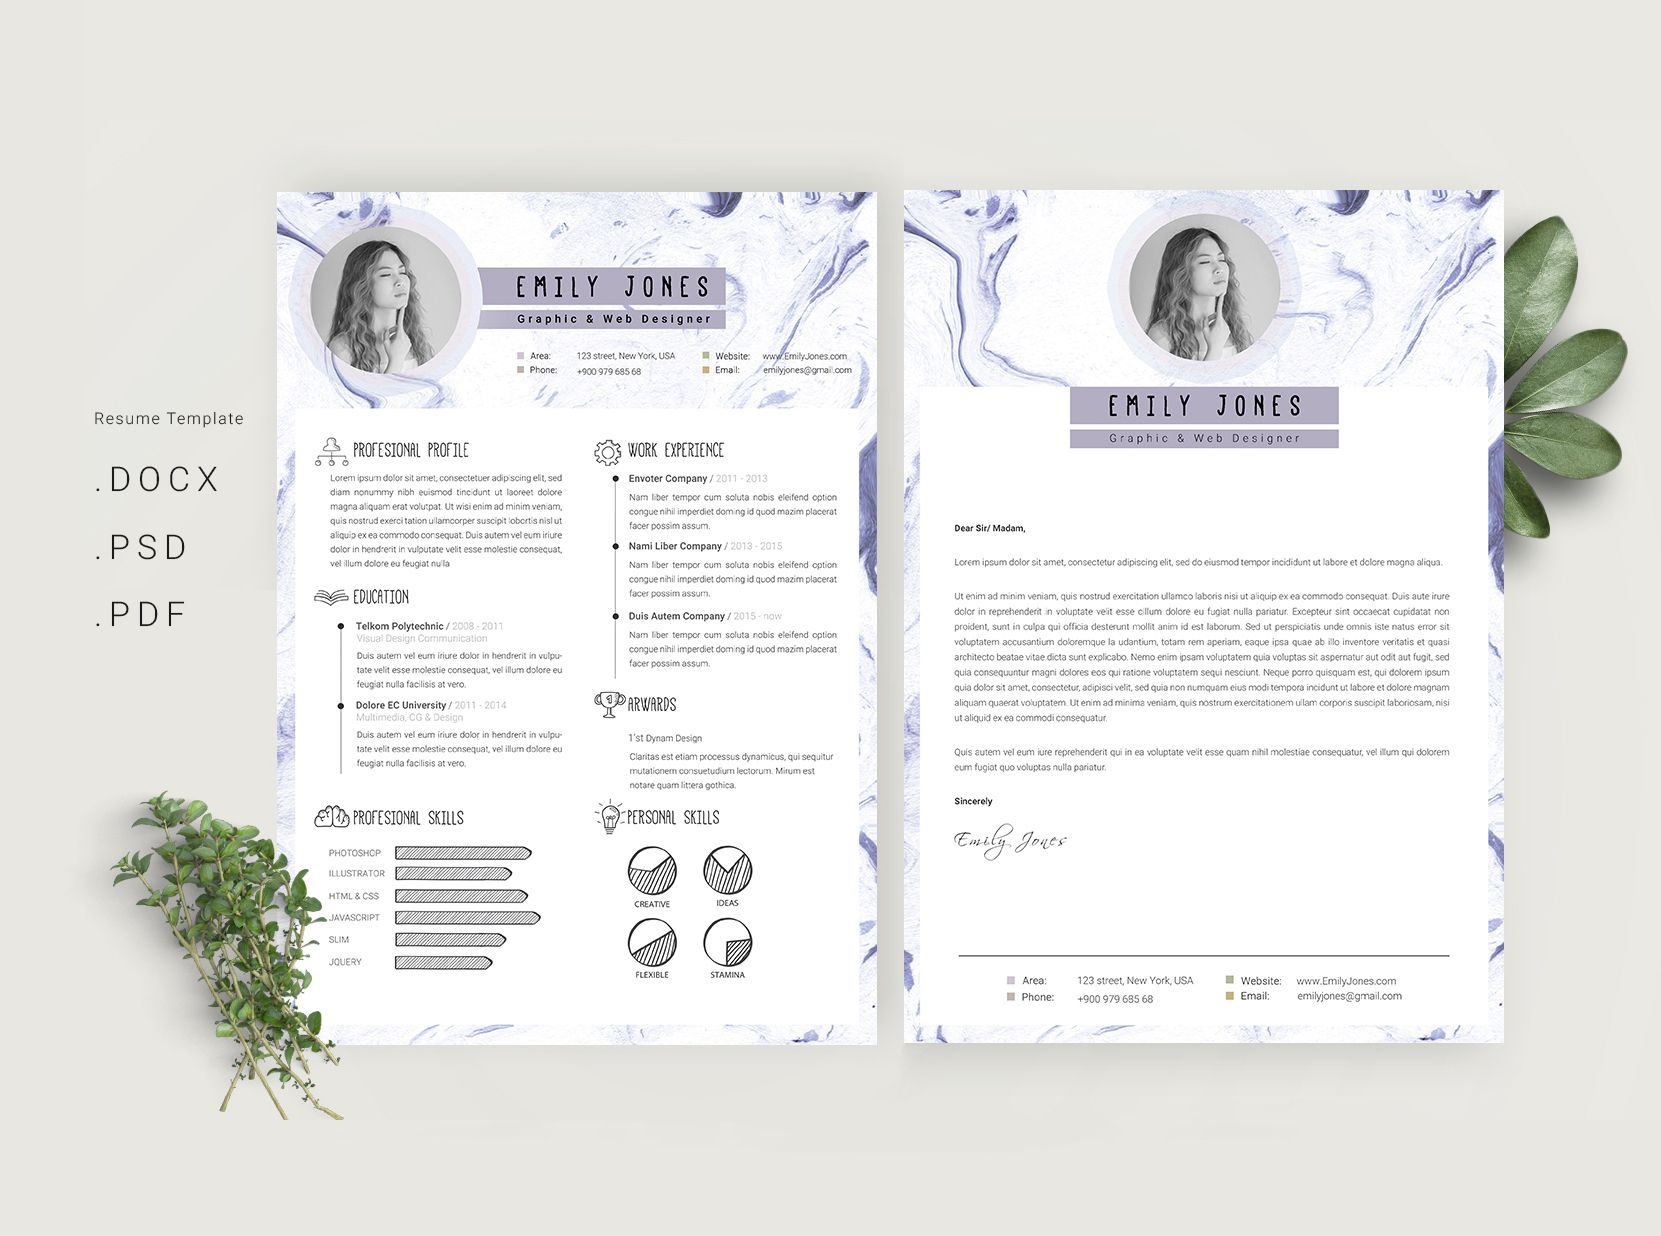 Resume Behance Resume Template check out my behance project simple resume template cv cv